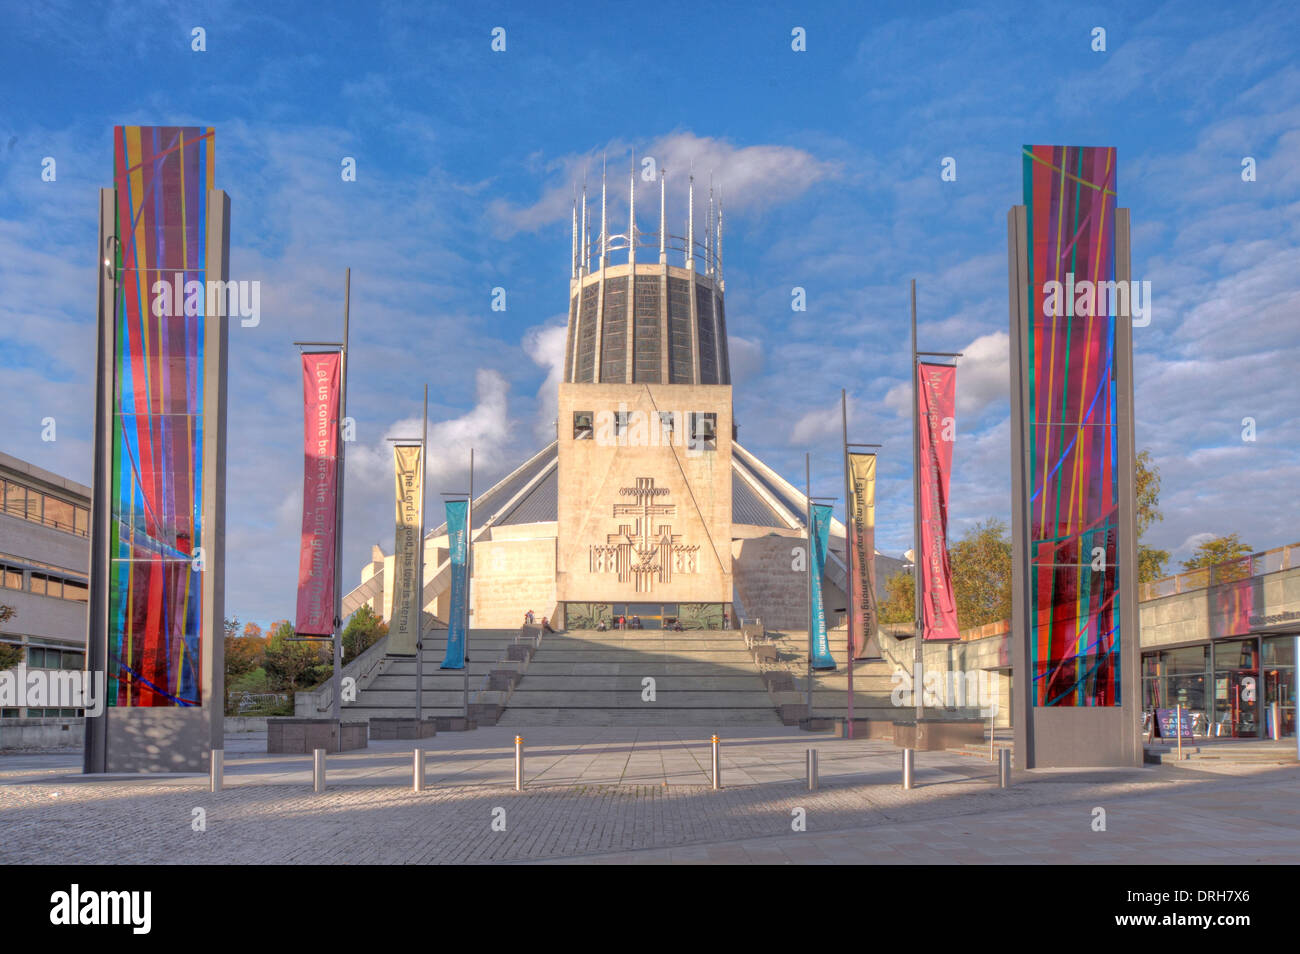 religion,uk,merseyside,england,GB,UK,Great,Britain,Metropolitan,Mount,pleasant,tourist,attraction,Paddys,Wigwam,paddys,funnel,concrete,brutalist,church,religious,Archbishop,of,irish,building,architect,Frederick,Gibberd,winner,main,entrance,Portland,stone,cladding,and,a,lead,covering,GoTonySmithcolourful,colorful,shots,of,1970,1970s,architecture,travel,site,tourists,immigrants,evening,summer,Grade,II,grade2,gradeII,tower,sight,sights,competition,Brownlow,Hill,roof,L3,5TQ,L35TQ,Buy Pictures of,Buy Images Of